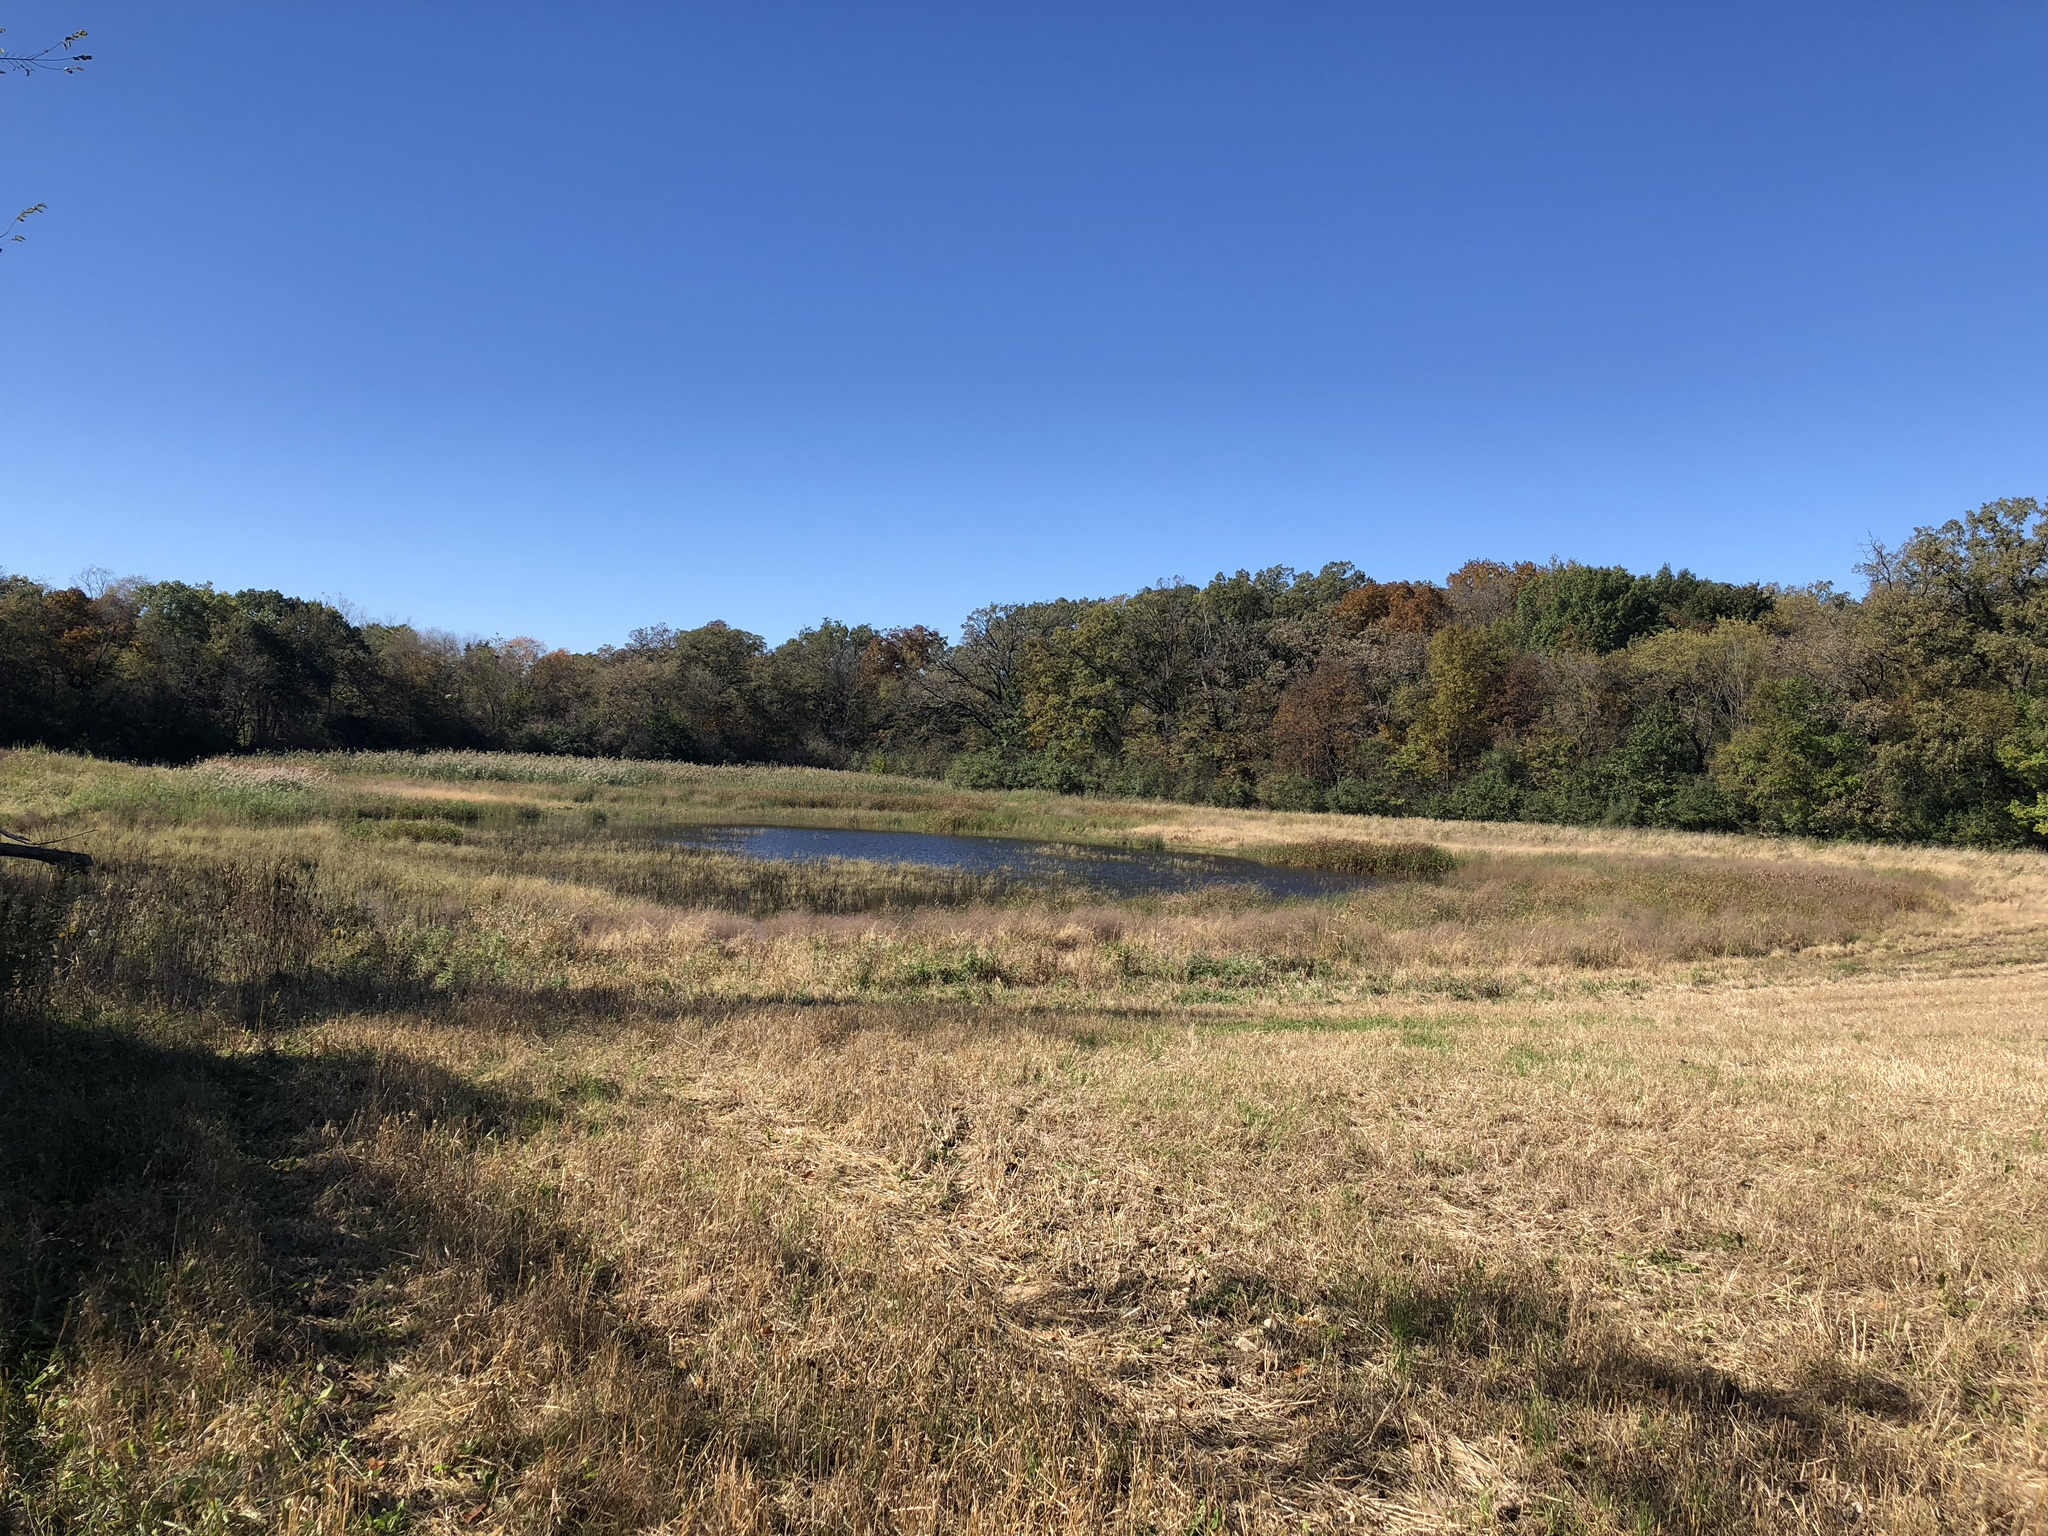 38 Acres - NE of Route 120 on Rand Rd.